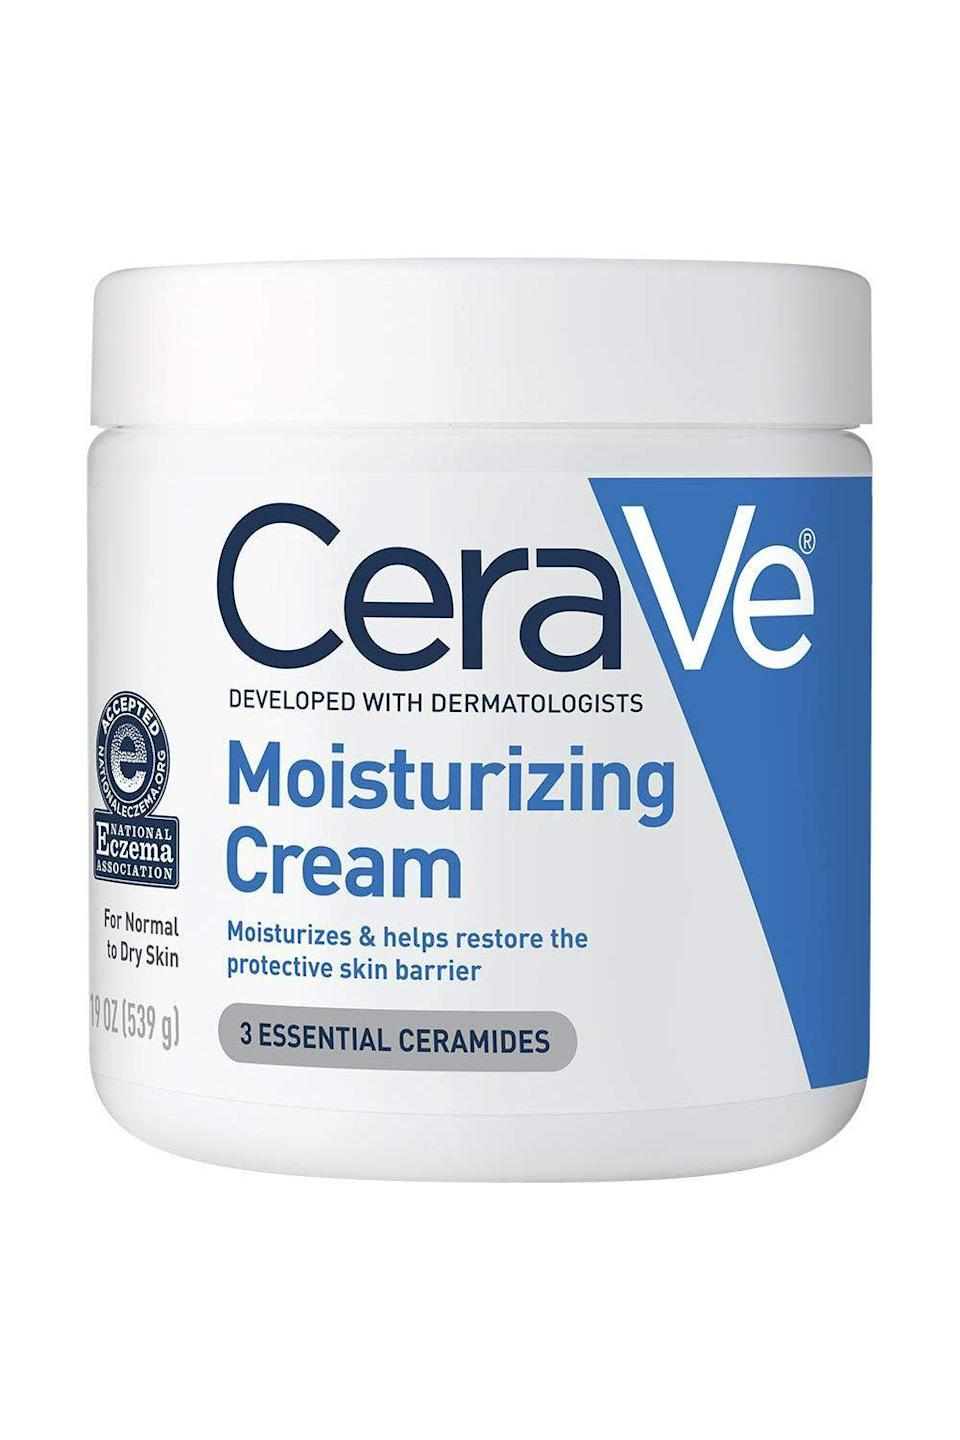 """<p><strong>CeraVe</strong></p><p>amazon.com</p><p><strong>$16.08</strong></p><p><a href=""""https://www.amazon.com/dp/B00TTD9BRC?tag=syn-yahoo-20&ascsubtag=%5Bartid%7C10049.g.33904719%5Bsrc%7Cyahoo-us"""" rel=""""nofollow noopener"""" target=""""_blank"""" data-ylk=""""slk:shop"""" class=""""link rapid-noclick-resp"""">shop</a></p><p>Don't know what <a href=""""https://www.cosmopolitan.com/style-beauty/beauty/g21950910/best-face-moisturizer-skin-type/"""" rel=""""nofollow noopener"""" target=""""_blank"""" data-ylk=""""slk:moisturizer"""" class=""""link rapid-noclick-resp"""">moisturizer</a> to get? Go with this one. It's loaded with hyaluronic acid and ceramides to hydrate your skin and restore its protective barrier all while being fragrance- and oil-free.</p>"""